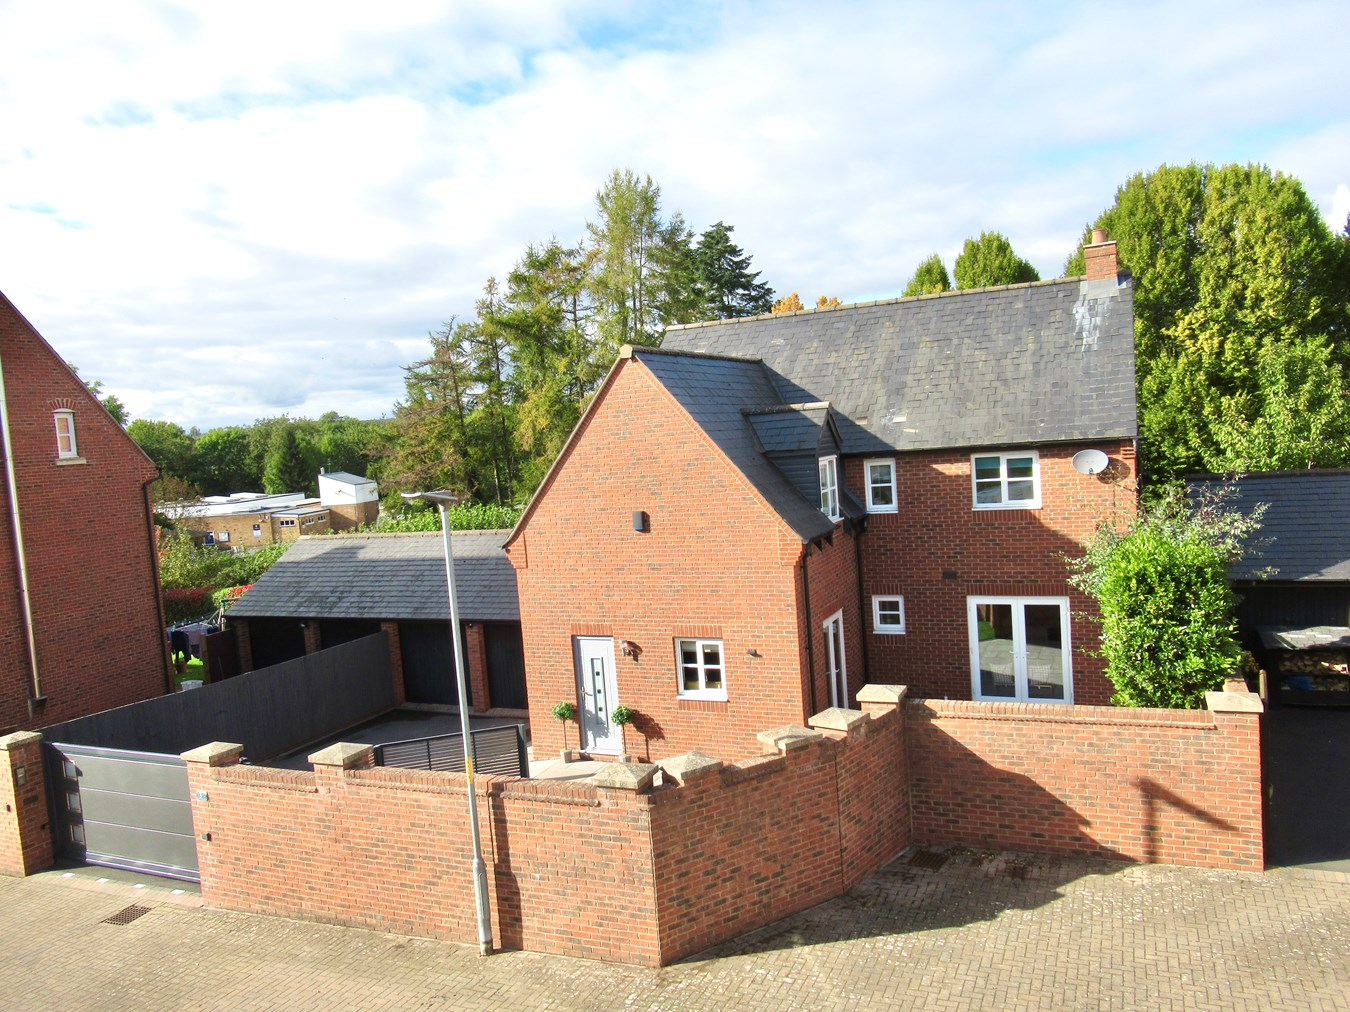 Tippetts Meadow, Kingstone, Hereford, HR2